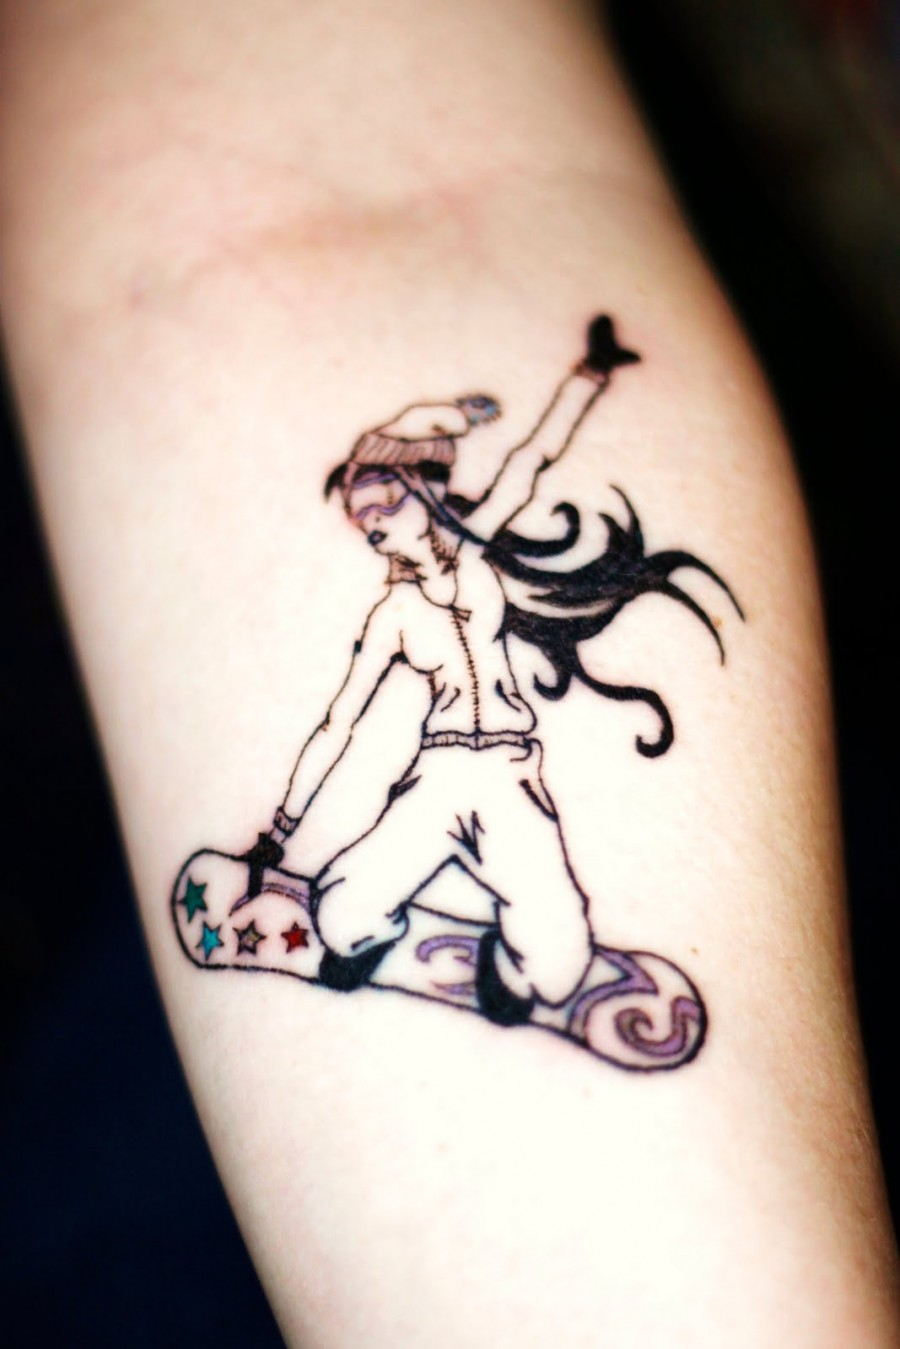 Girl's Forearm Snowboarding Tattoo